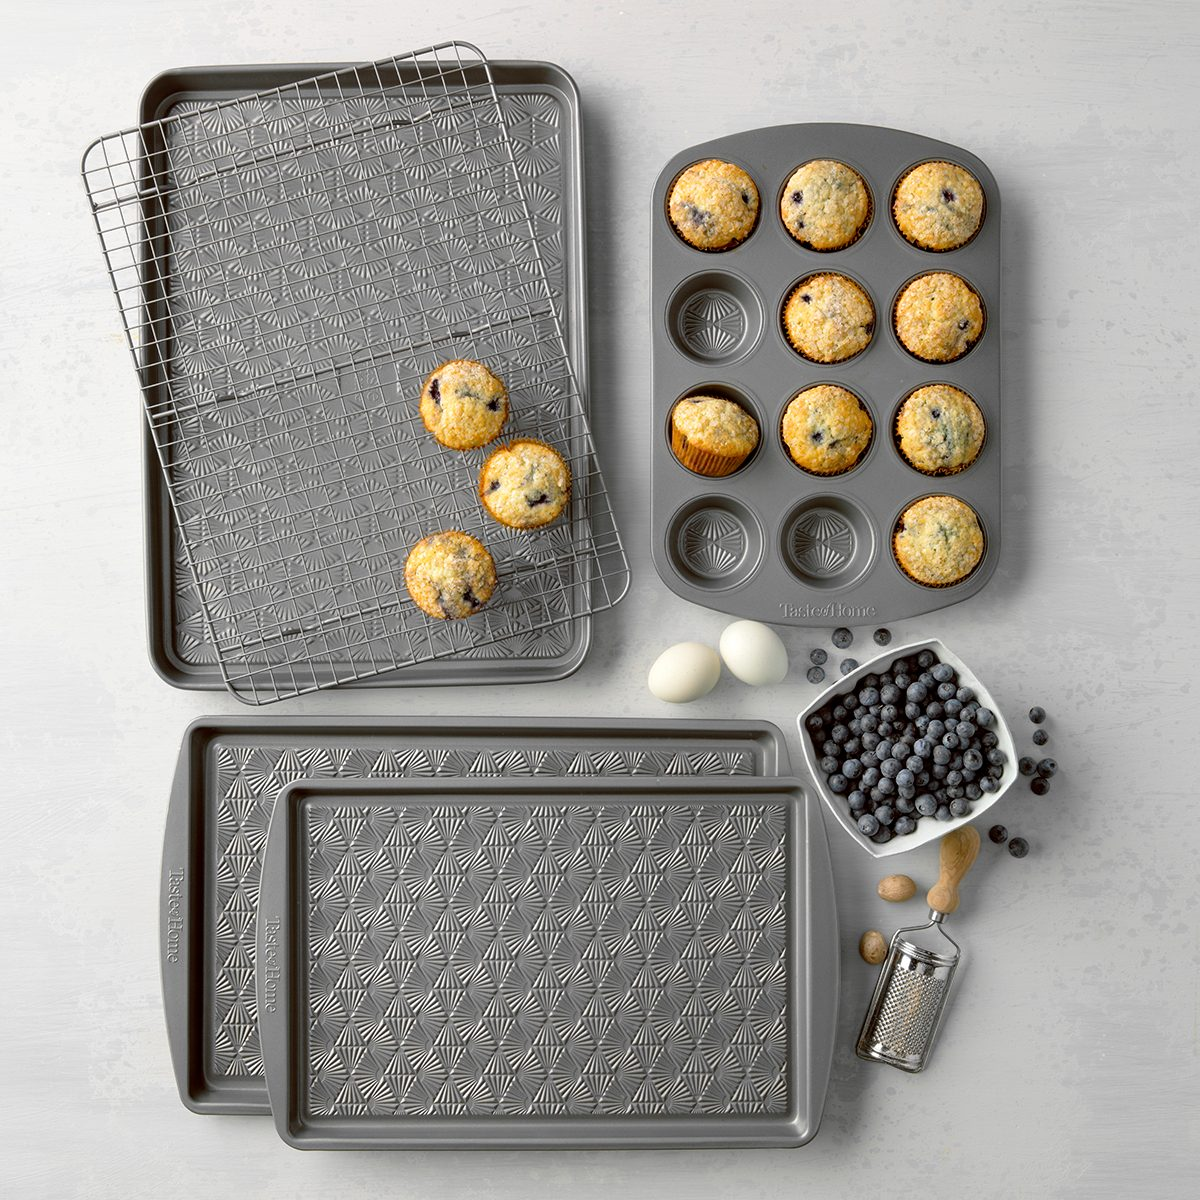 TOH Bakeware, blueberry muffins and baking pans